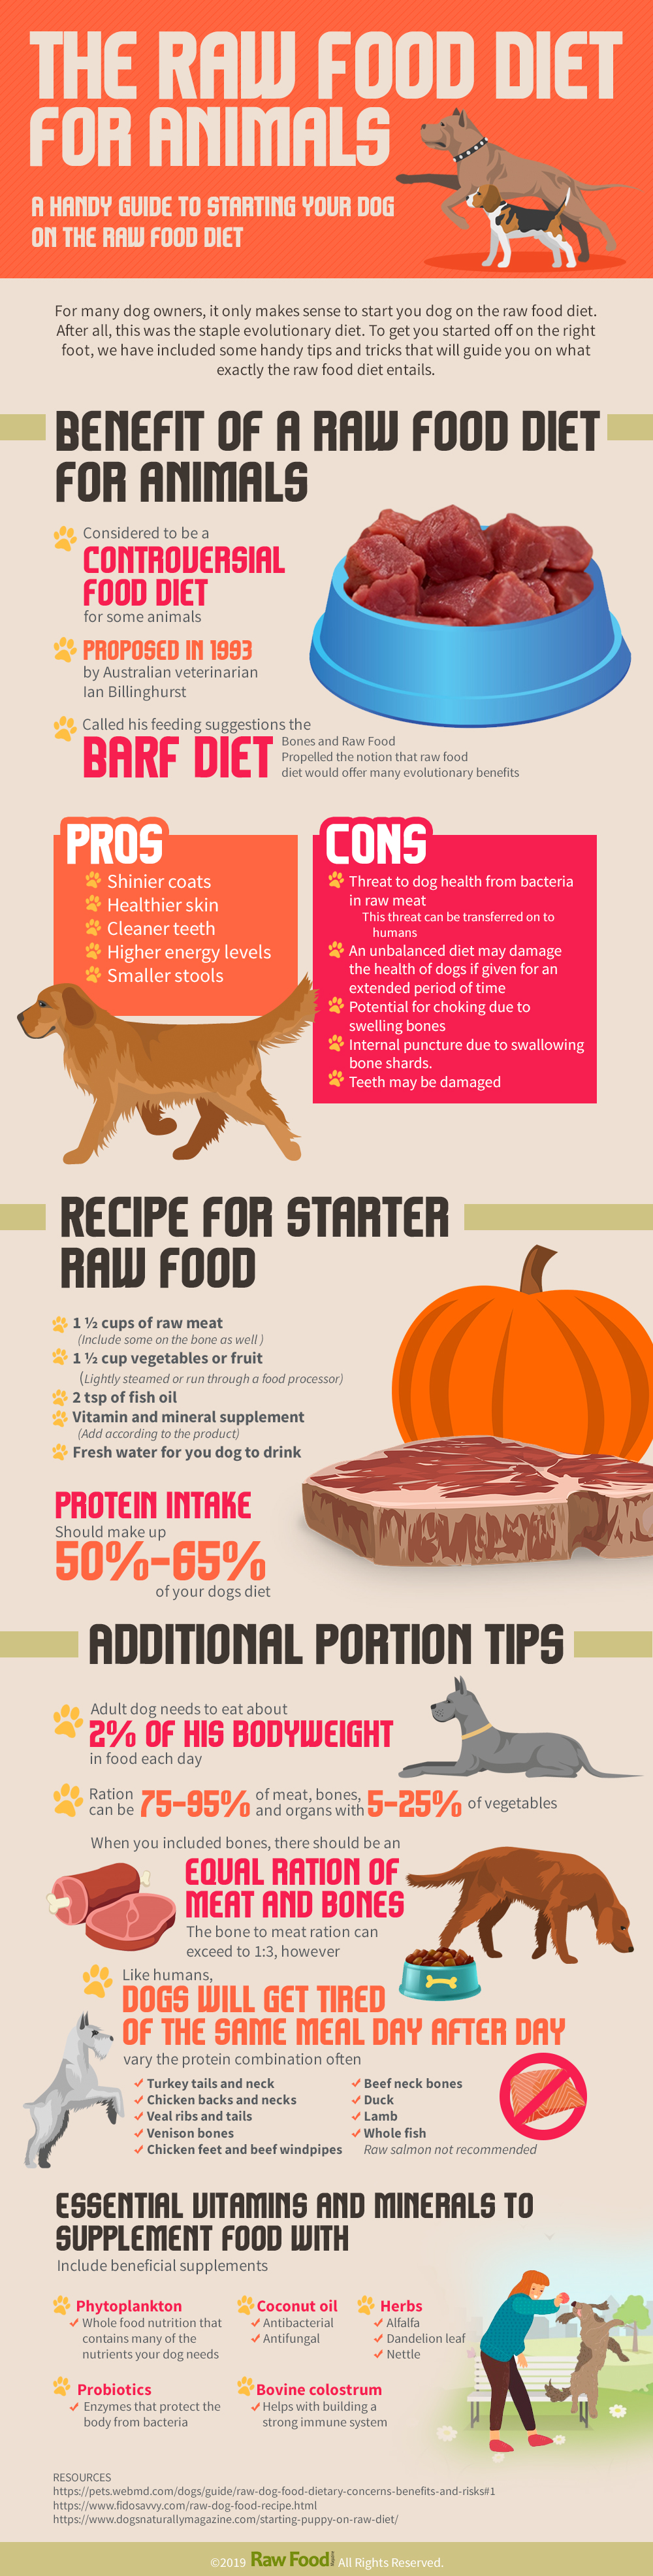 The Raw Food Diet for Animals